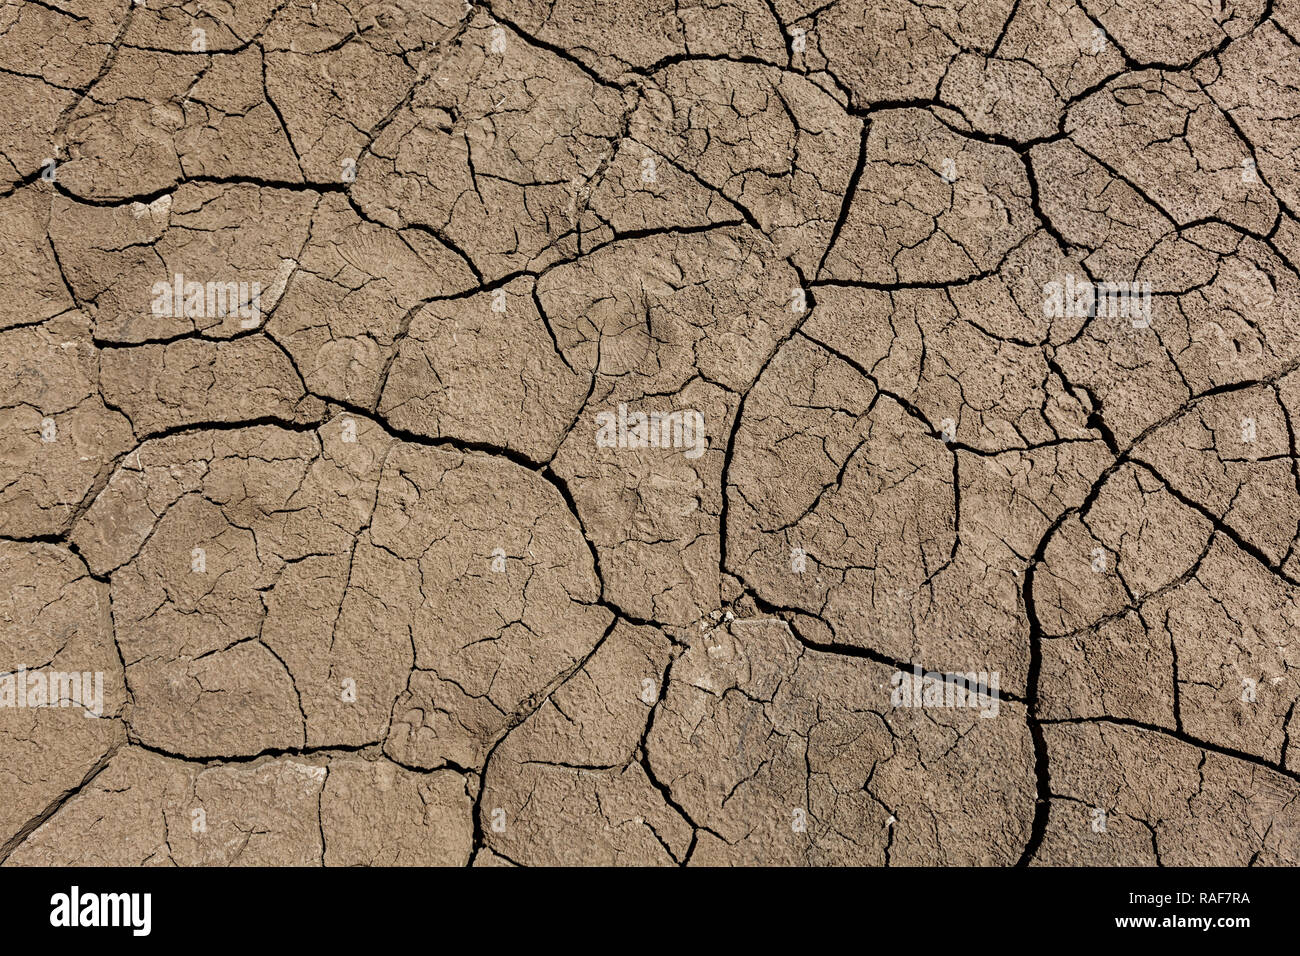 Earth ground with cracks - Stock Image